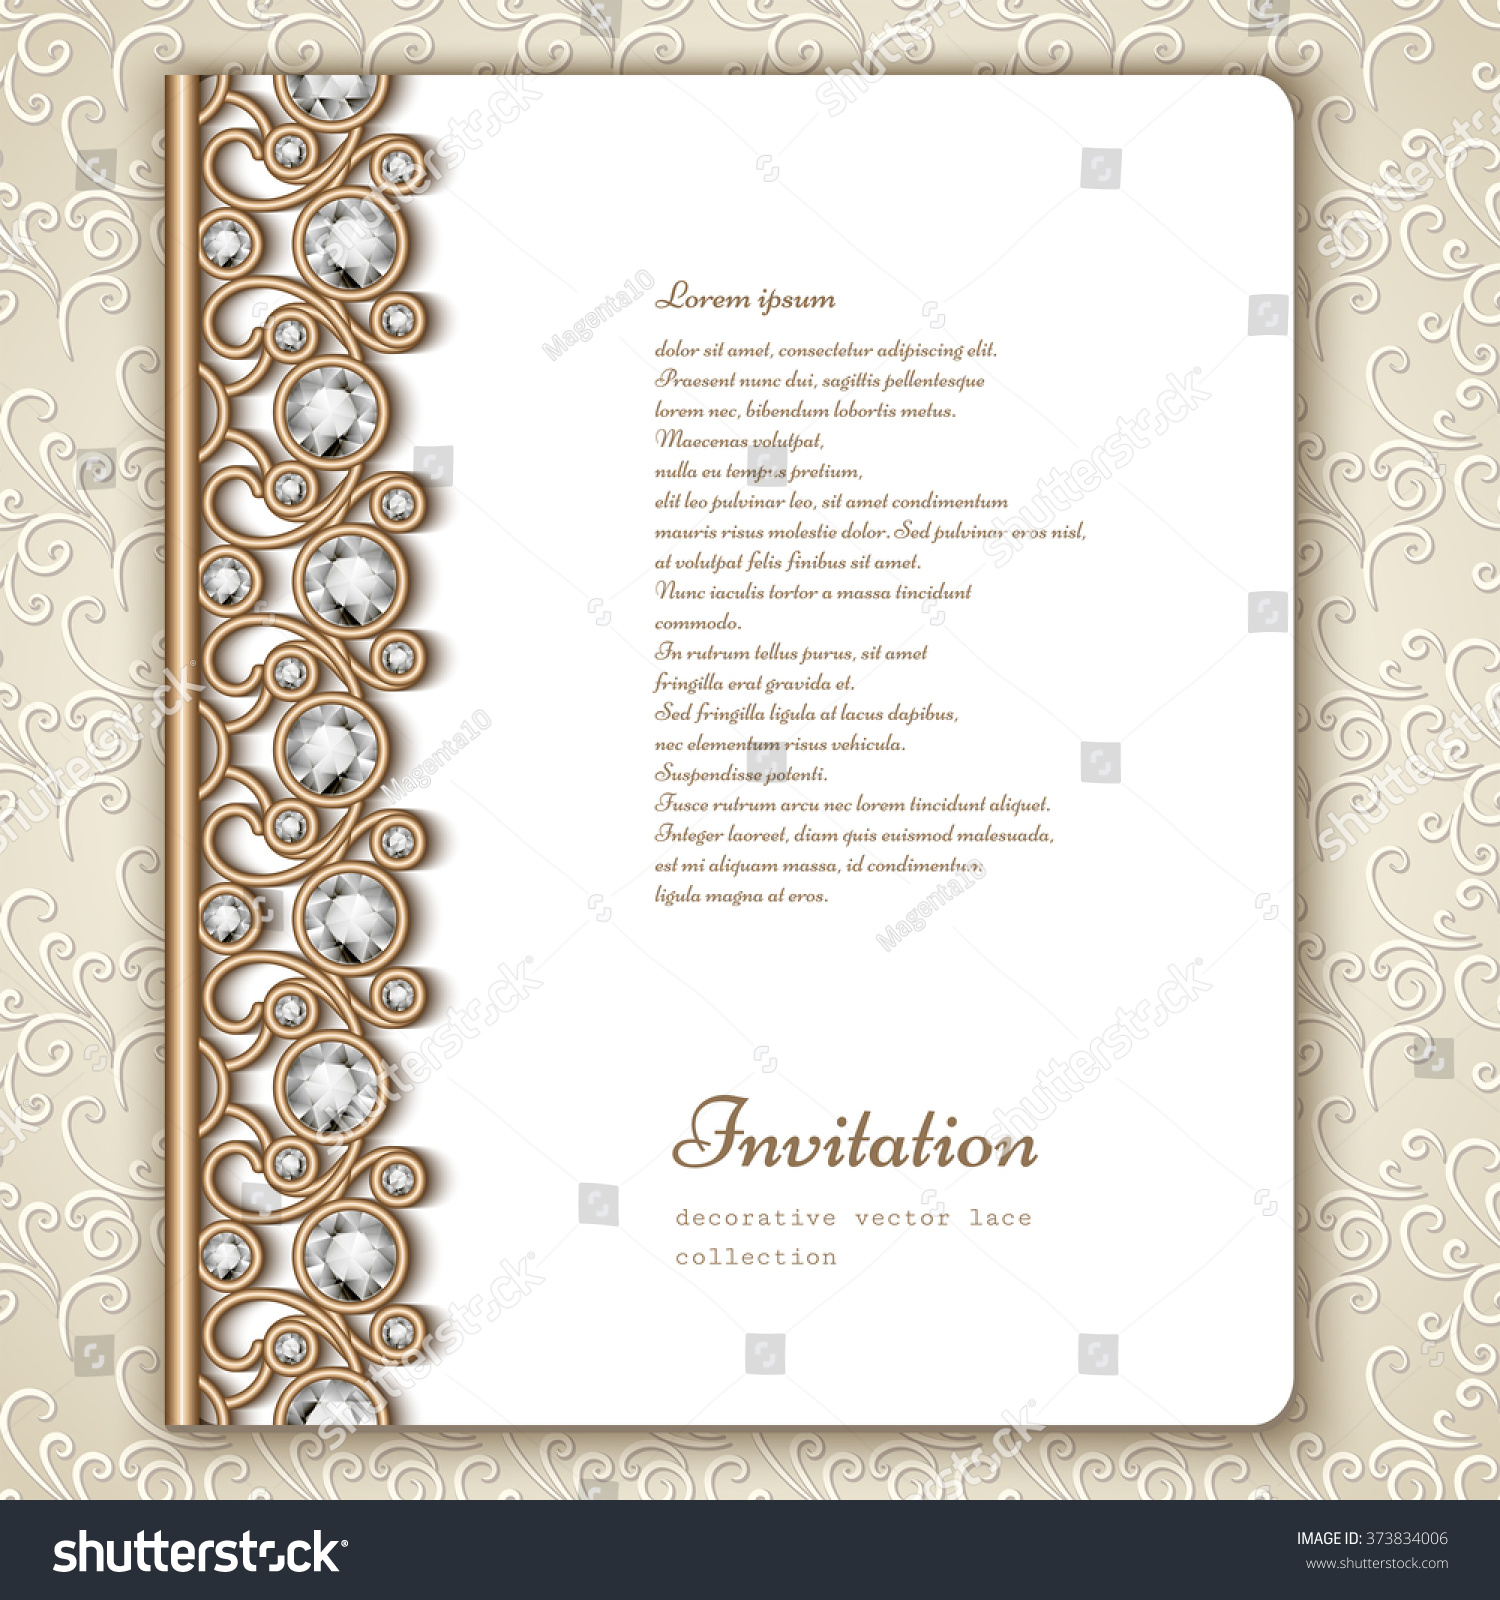 Wedding Book Cover Template ~ Book cover jewelry gold border ornament stock vector